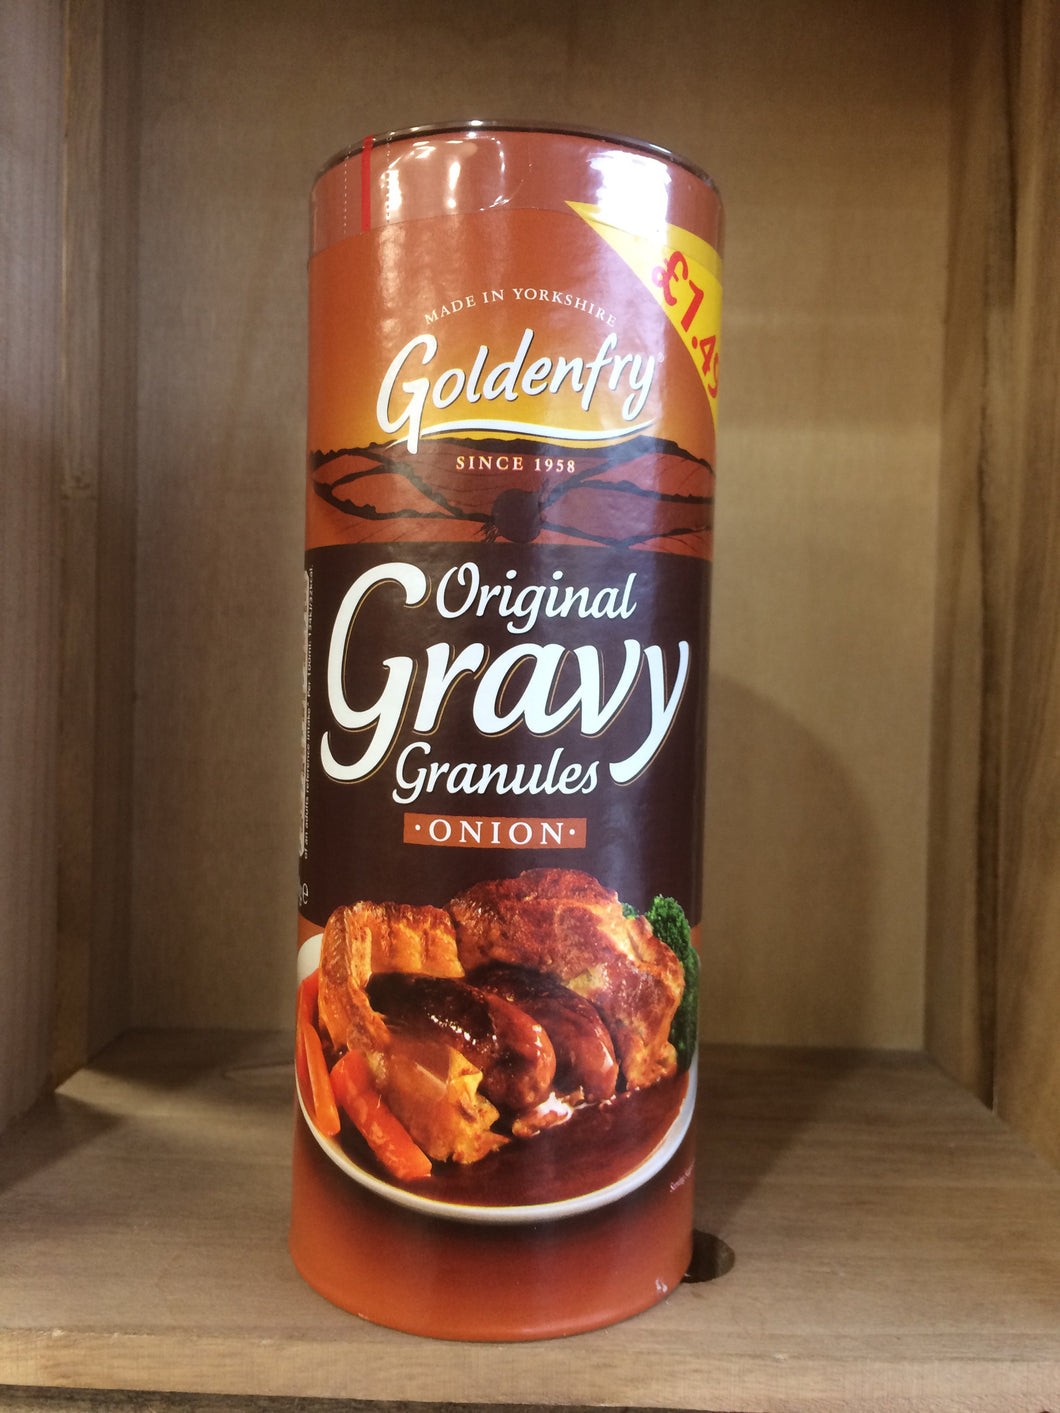 Golden fry original onion gravy granules 400g